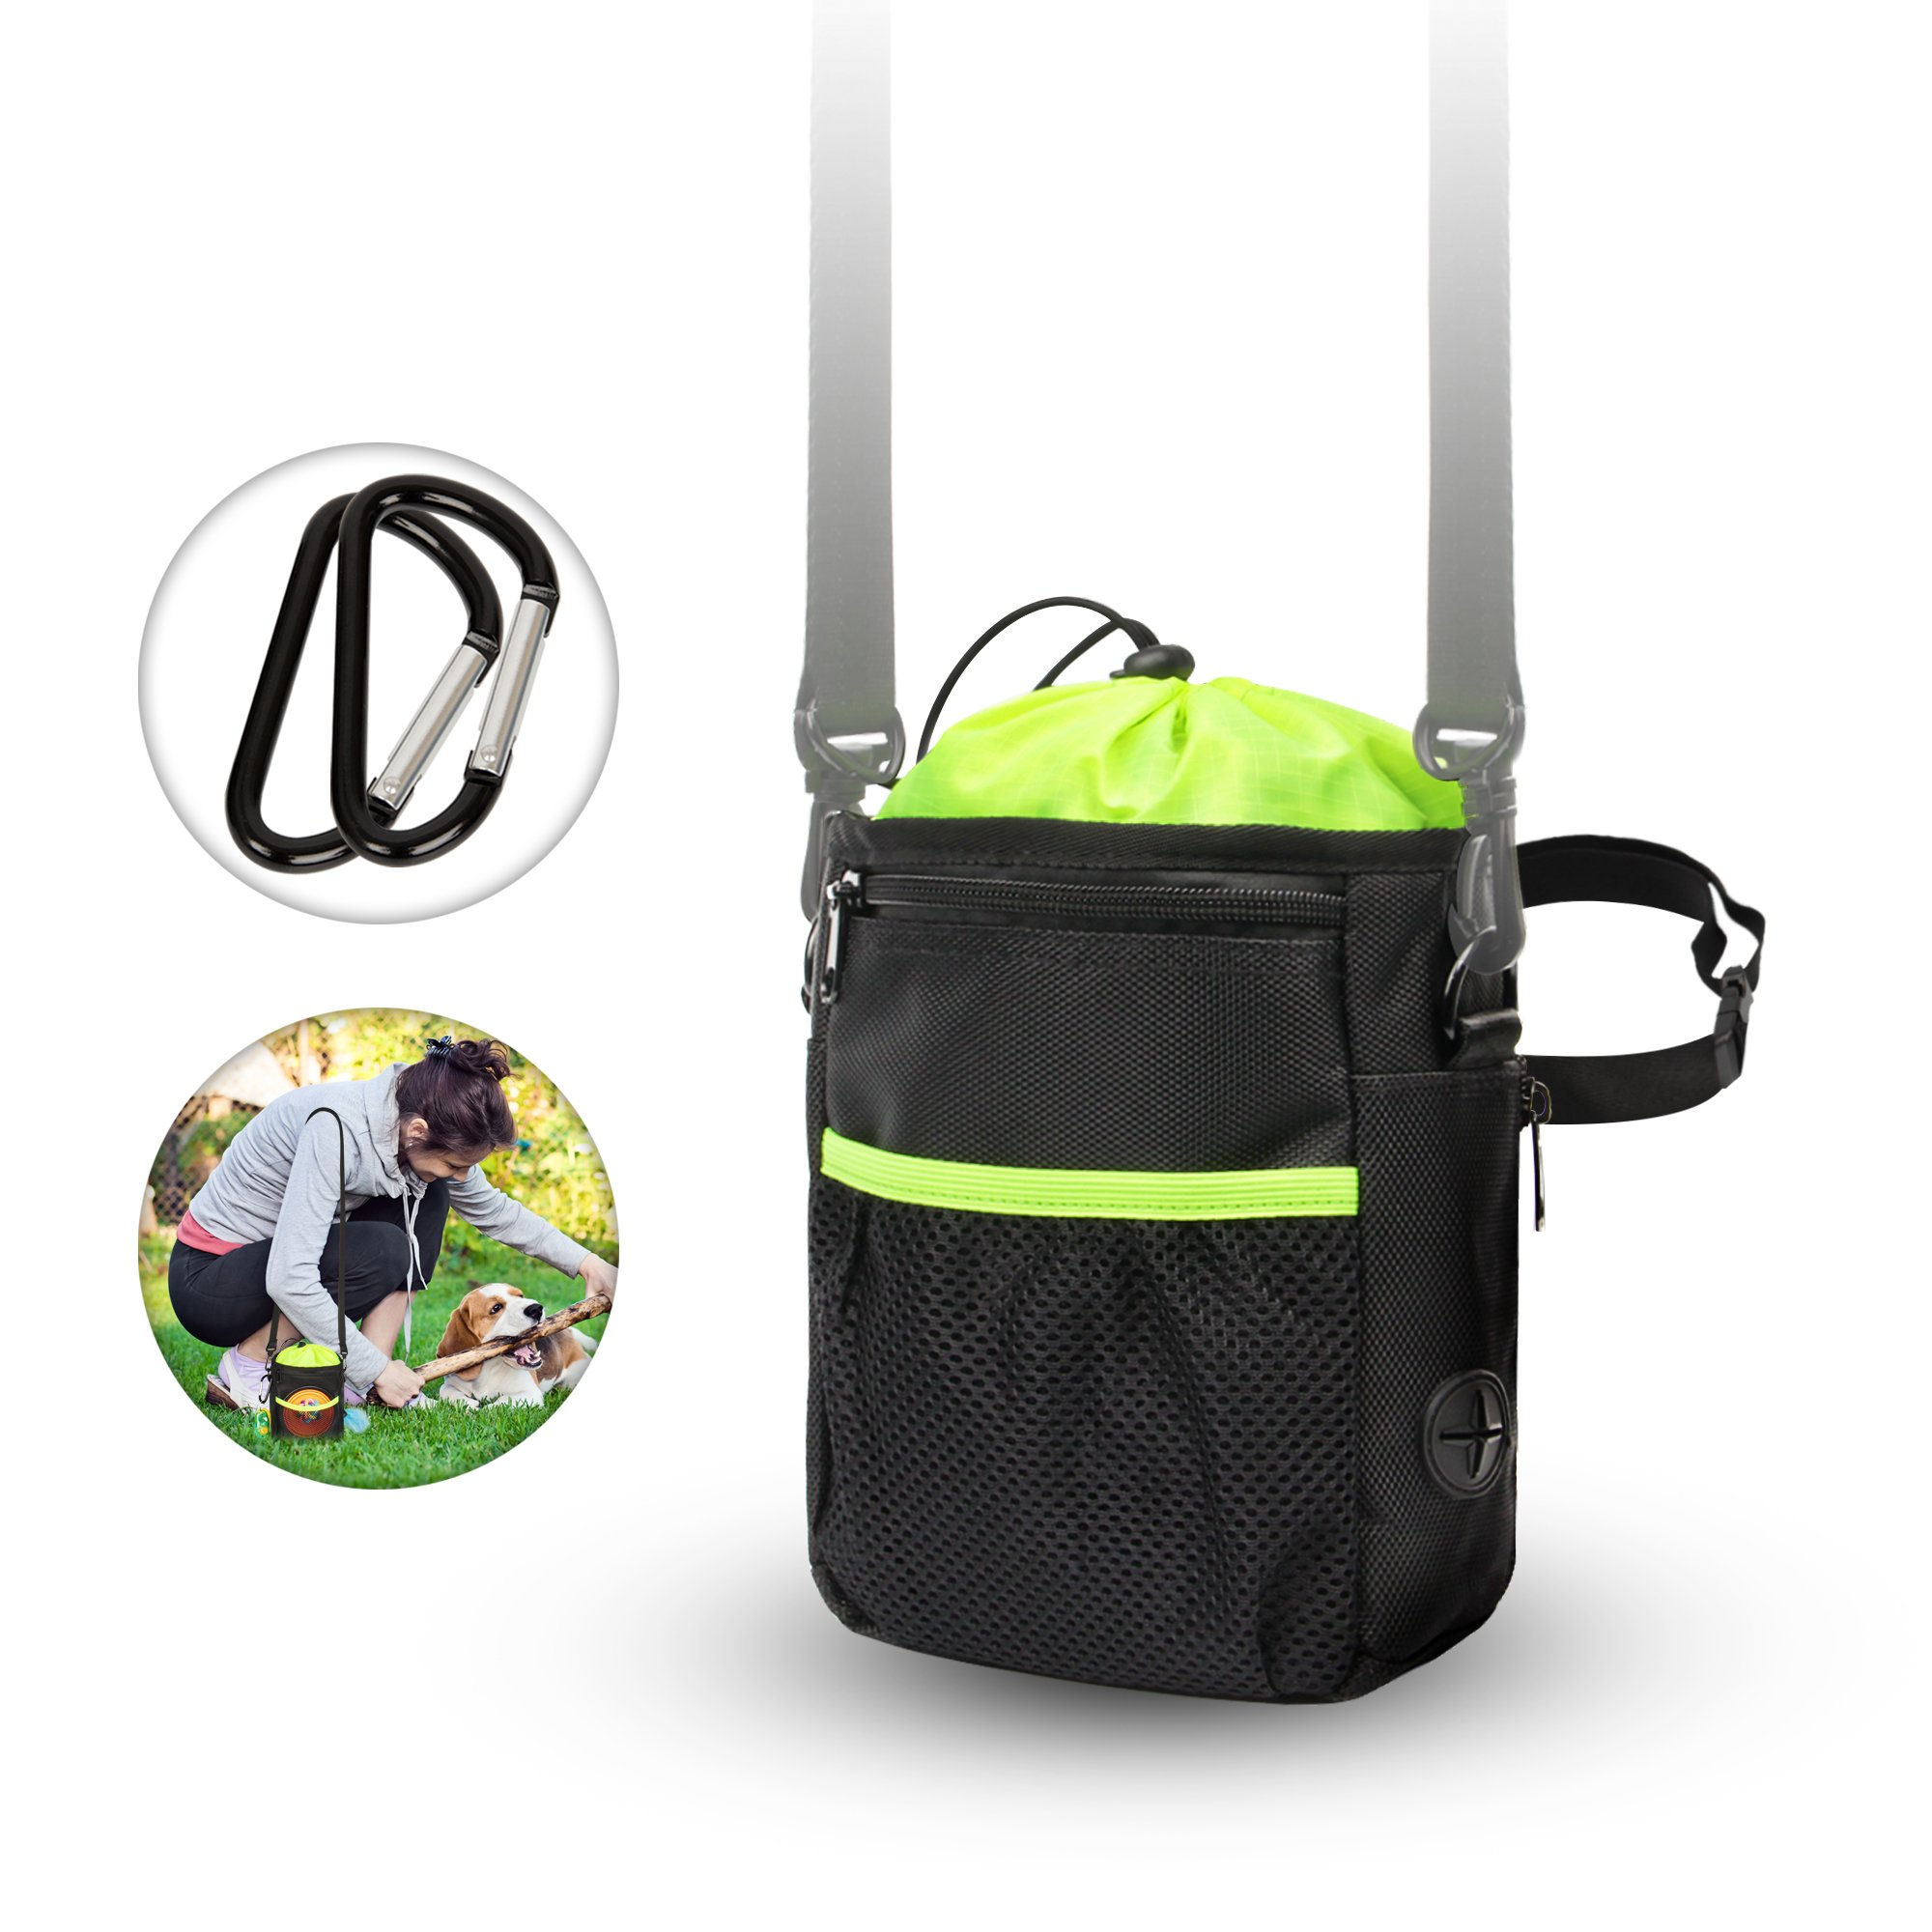 New Dog Treat Training Pouch bags dog perfect walking bag Pet Dog Accessories equipment hands free Removable Waist reward Belt Shoulder Strap Improved Puppy Poop holder Dispenser carries toys snacks